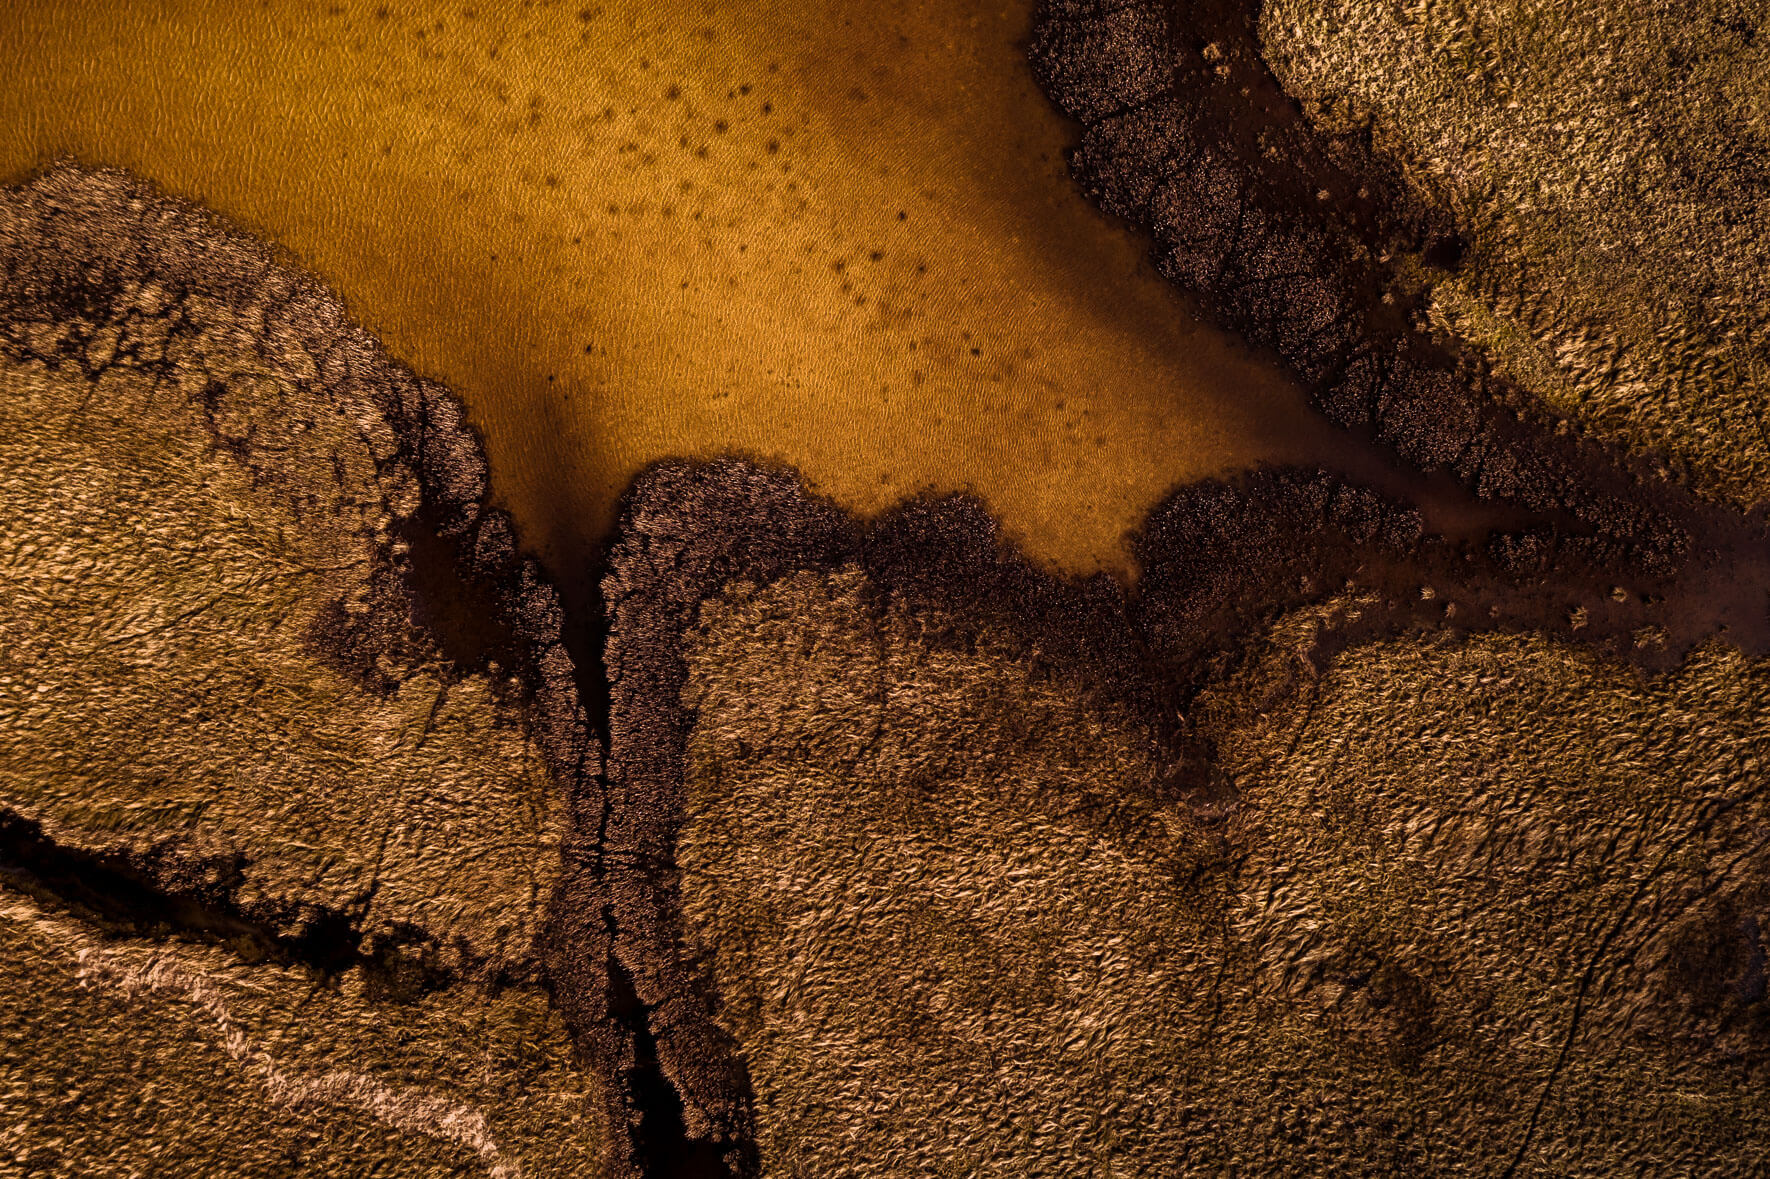 Abstract yellow lake and grass from aerial perspective